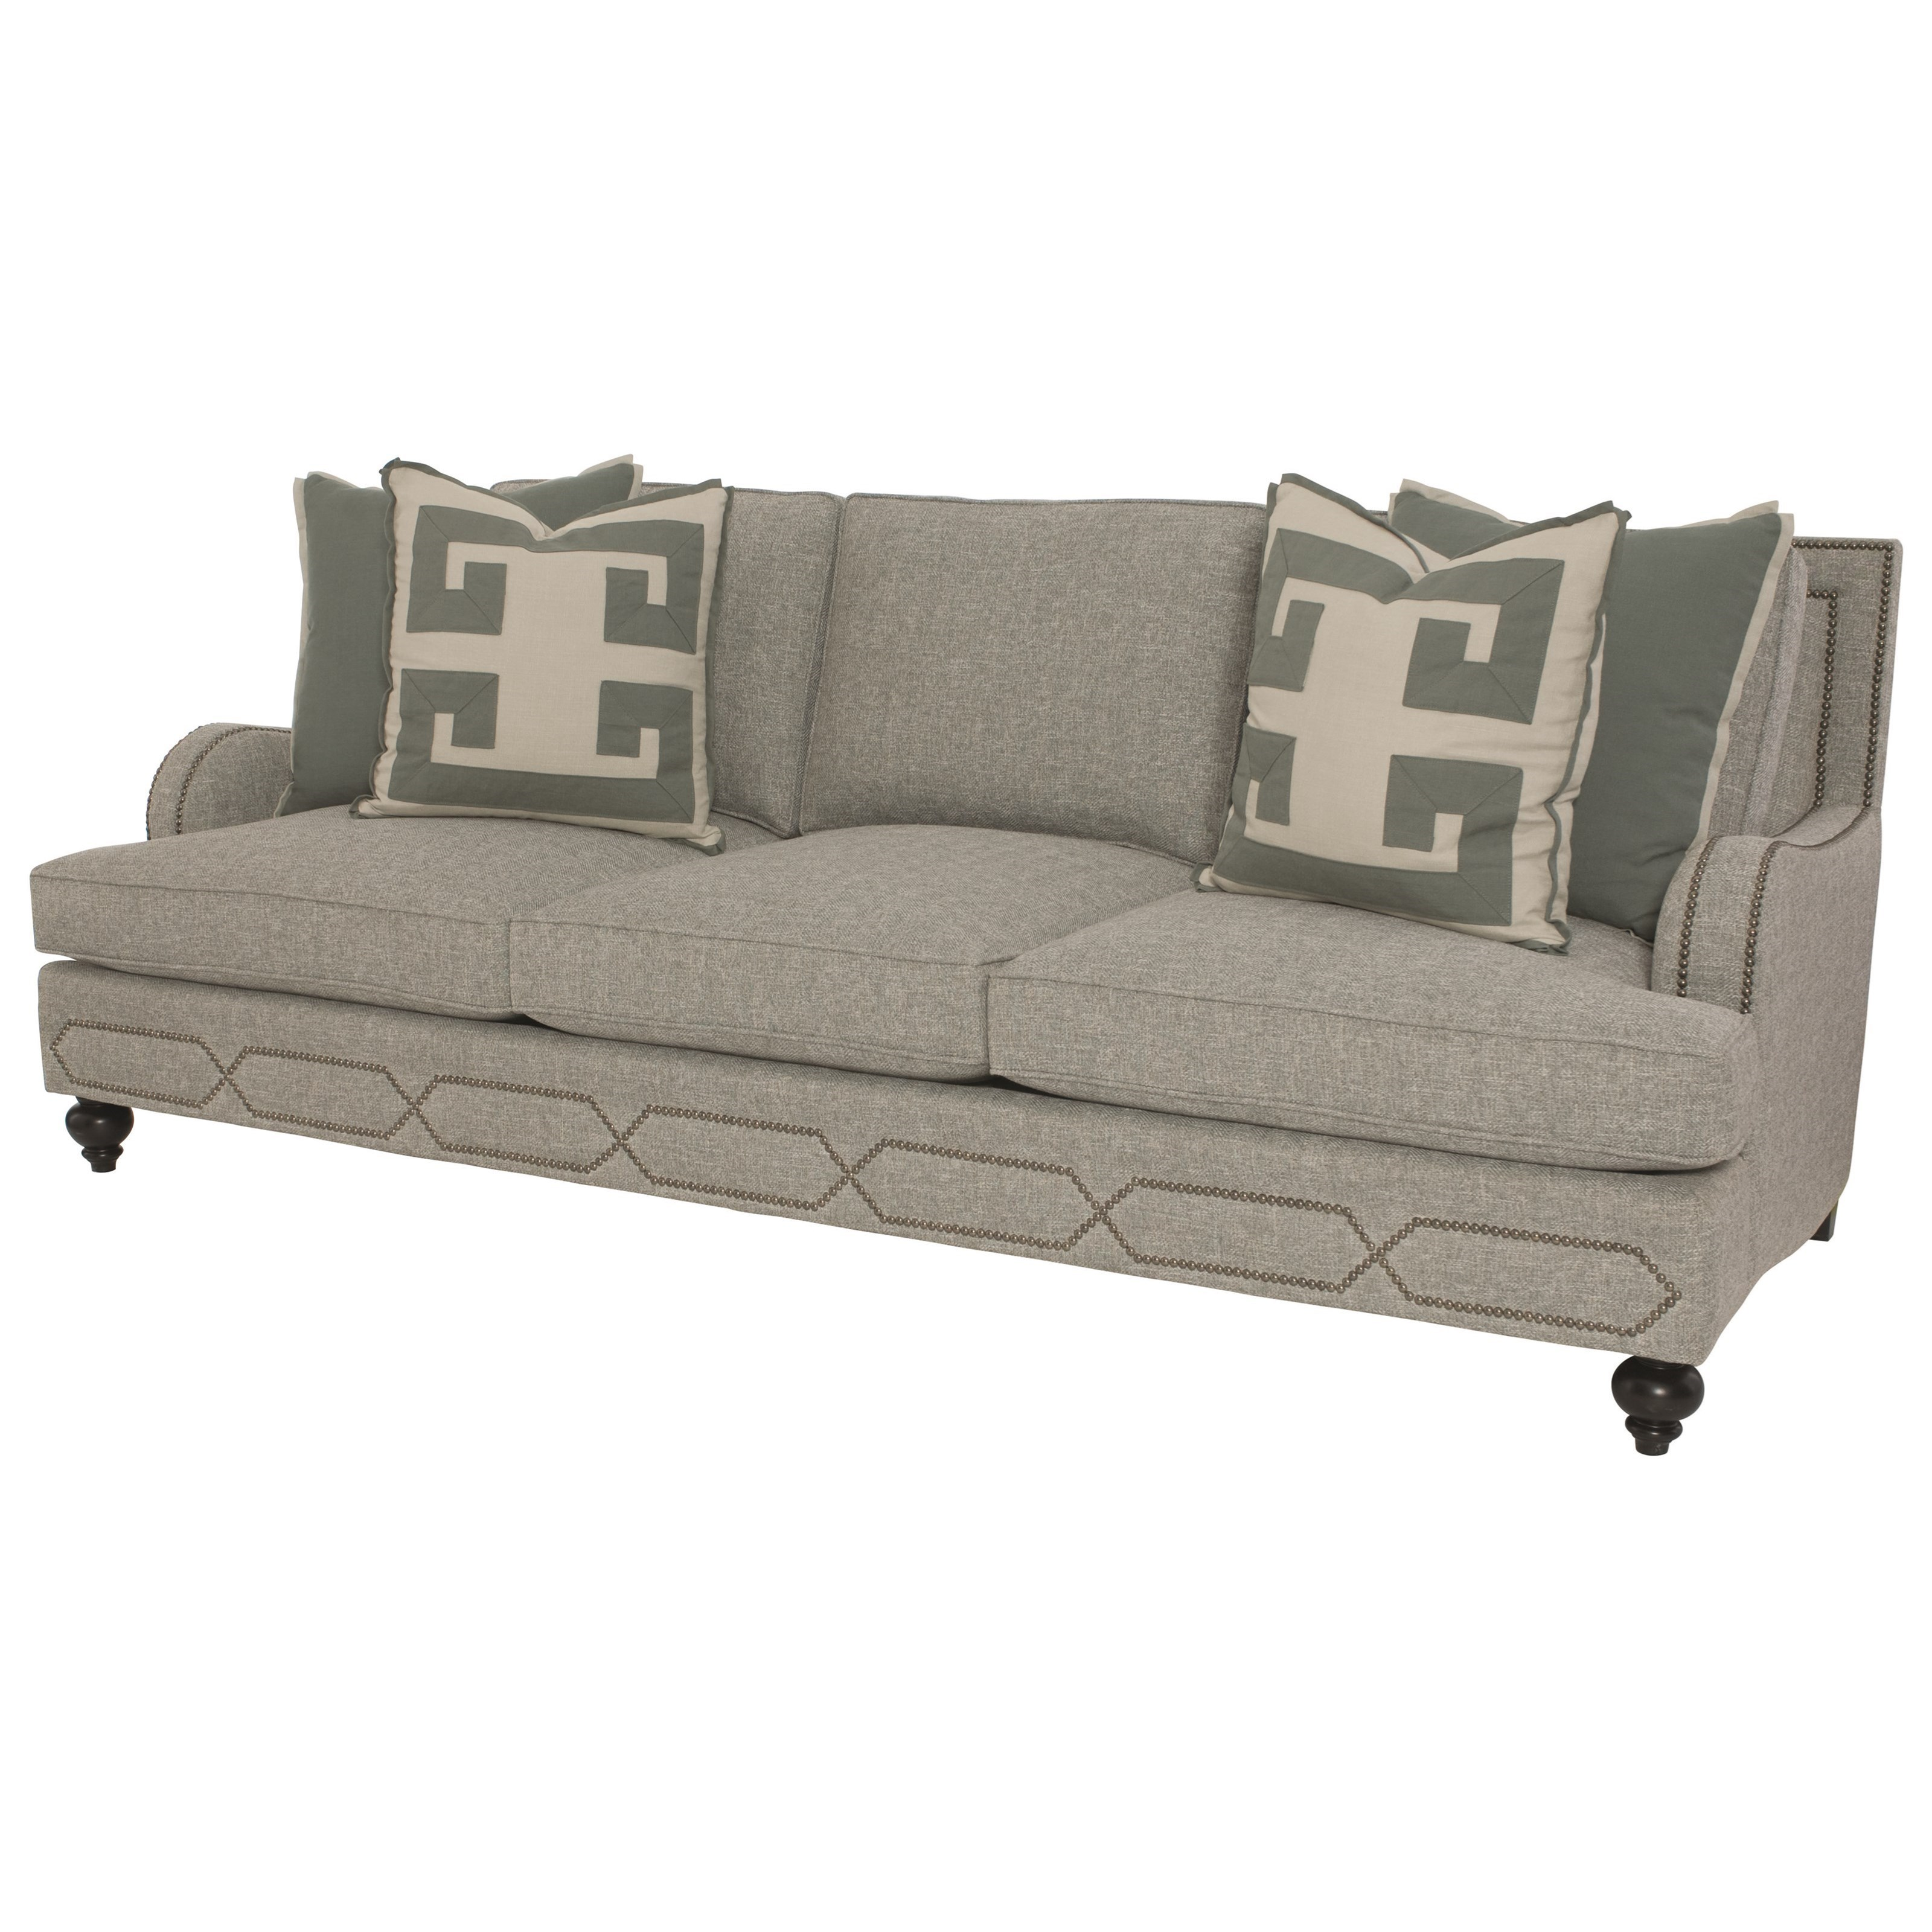 Bernhardt Franklin Sofa With Transitional Style Reeds Furniture Sofa